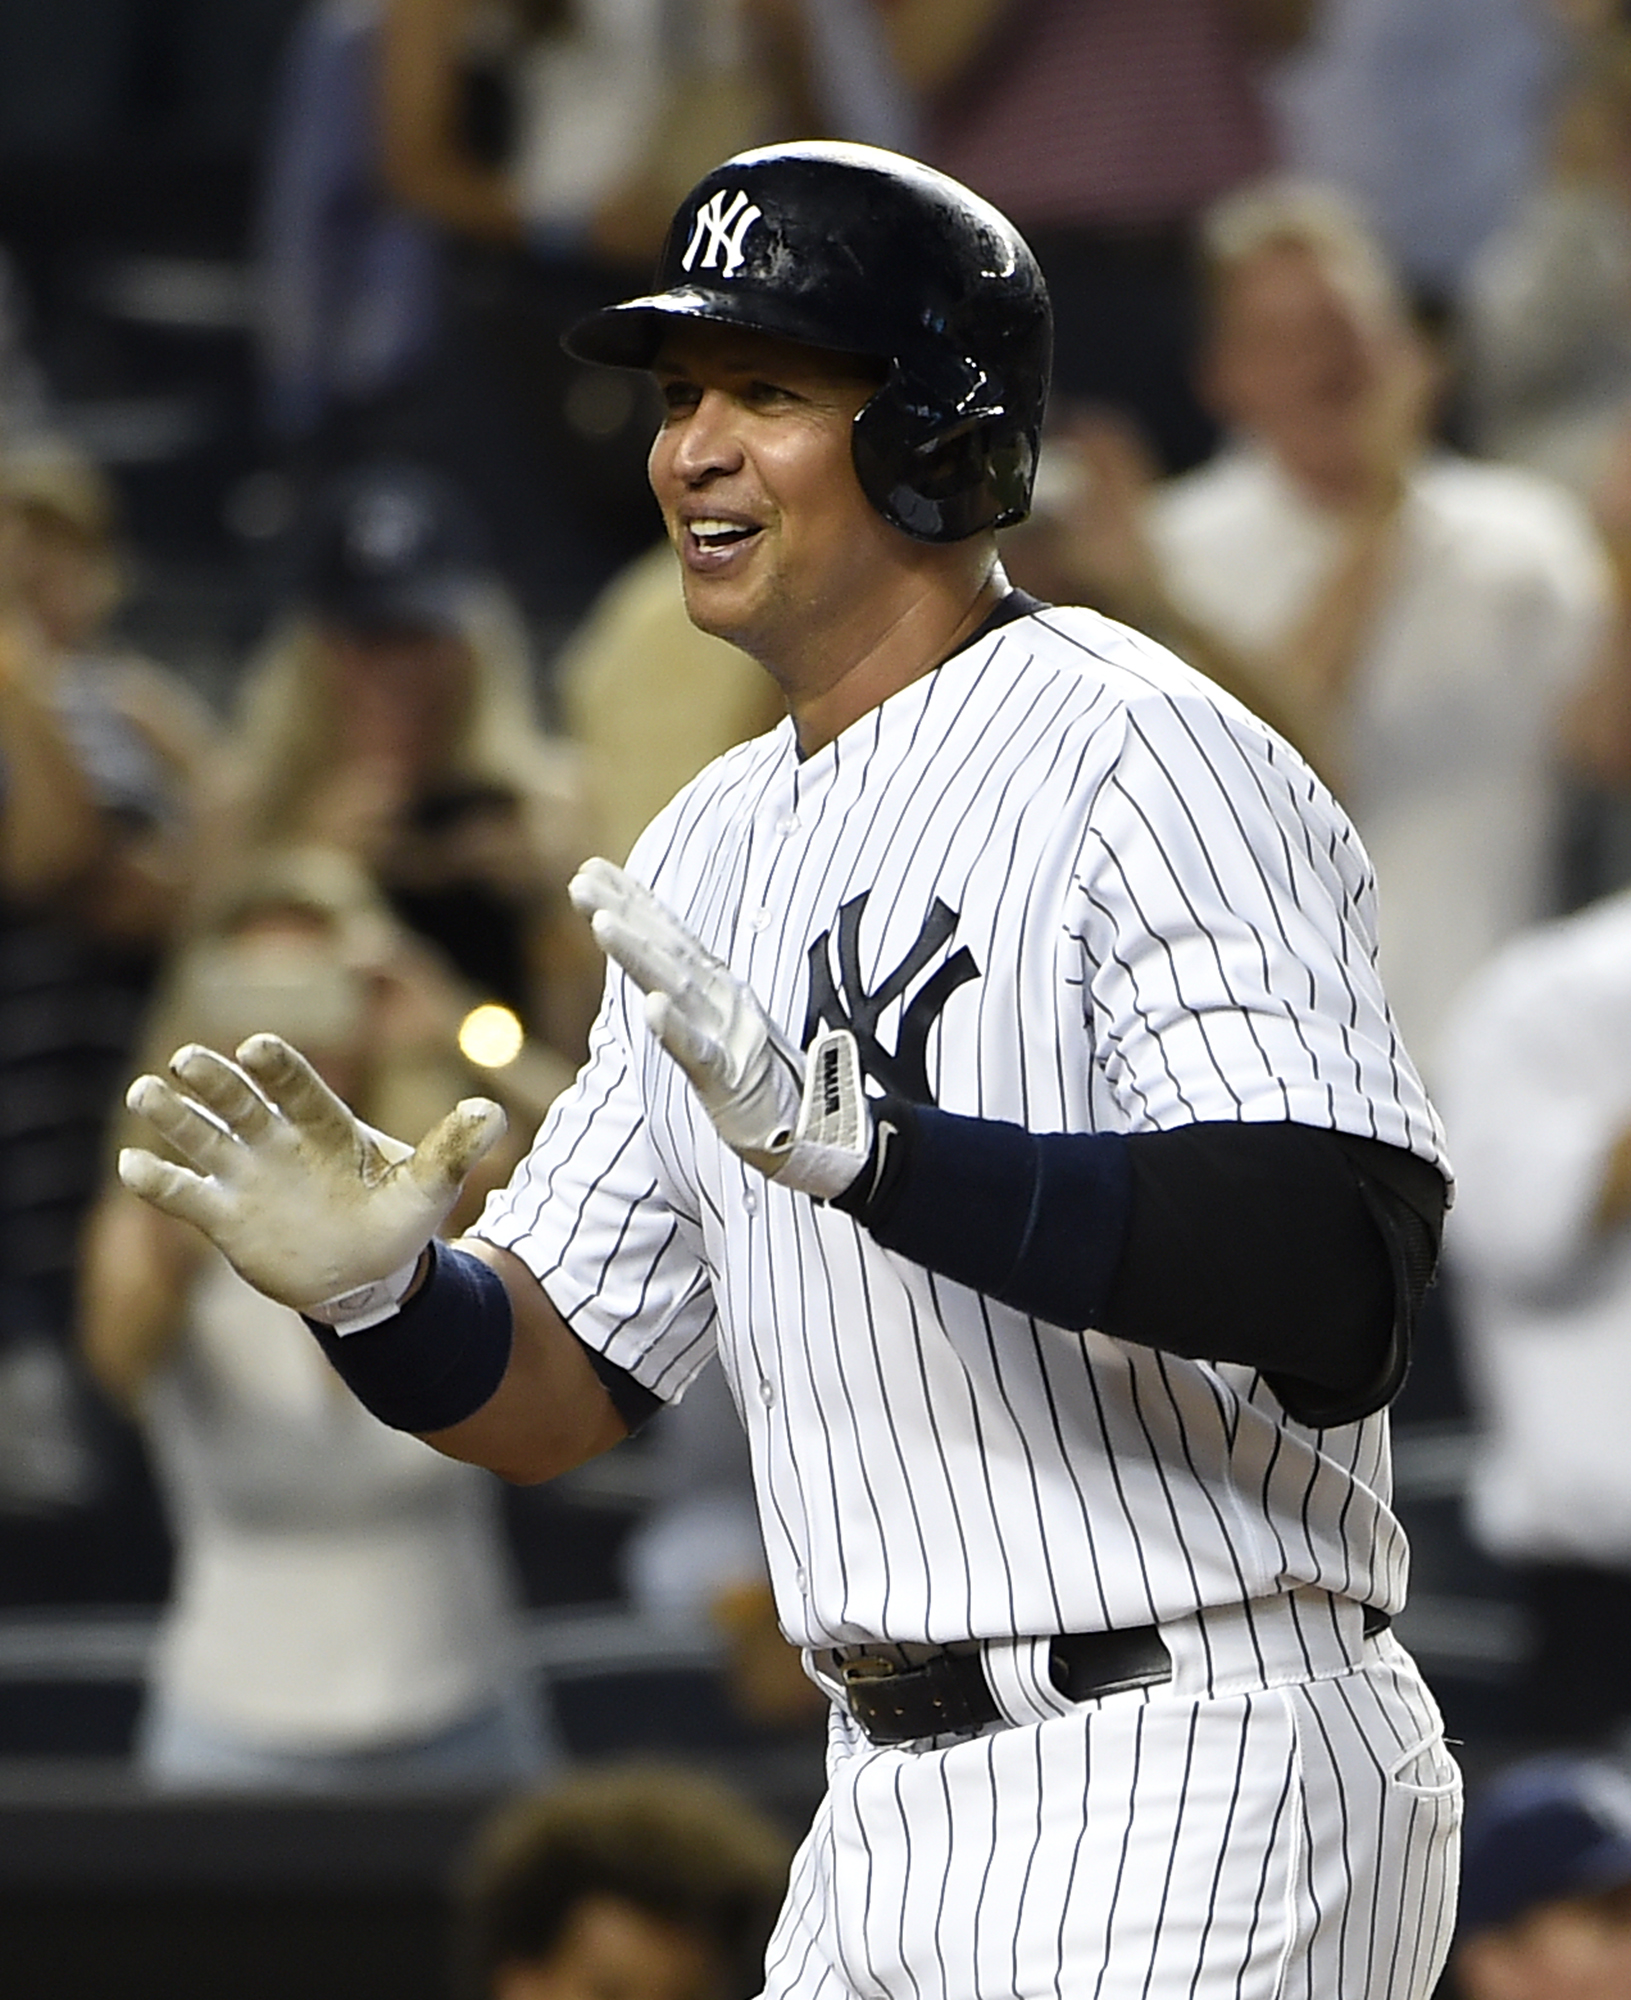 New York Yankees designated hitter Alex Rodriguez smiles as he runs towards home plate after hitting two-run home run off of Tampa Bay Rays starting pitcher Jake Odorizzi in the second inning of a baseball game at Yankee Stadium on Friday, Sept. 4, 2015,